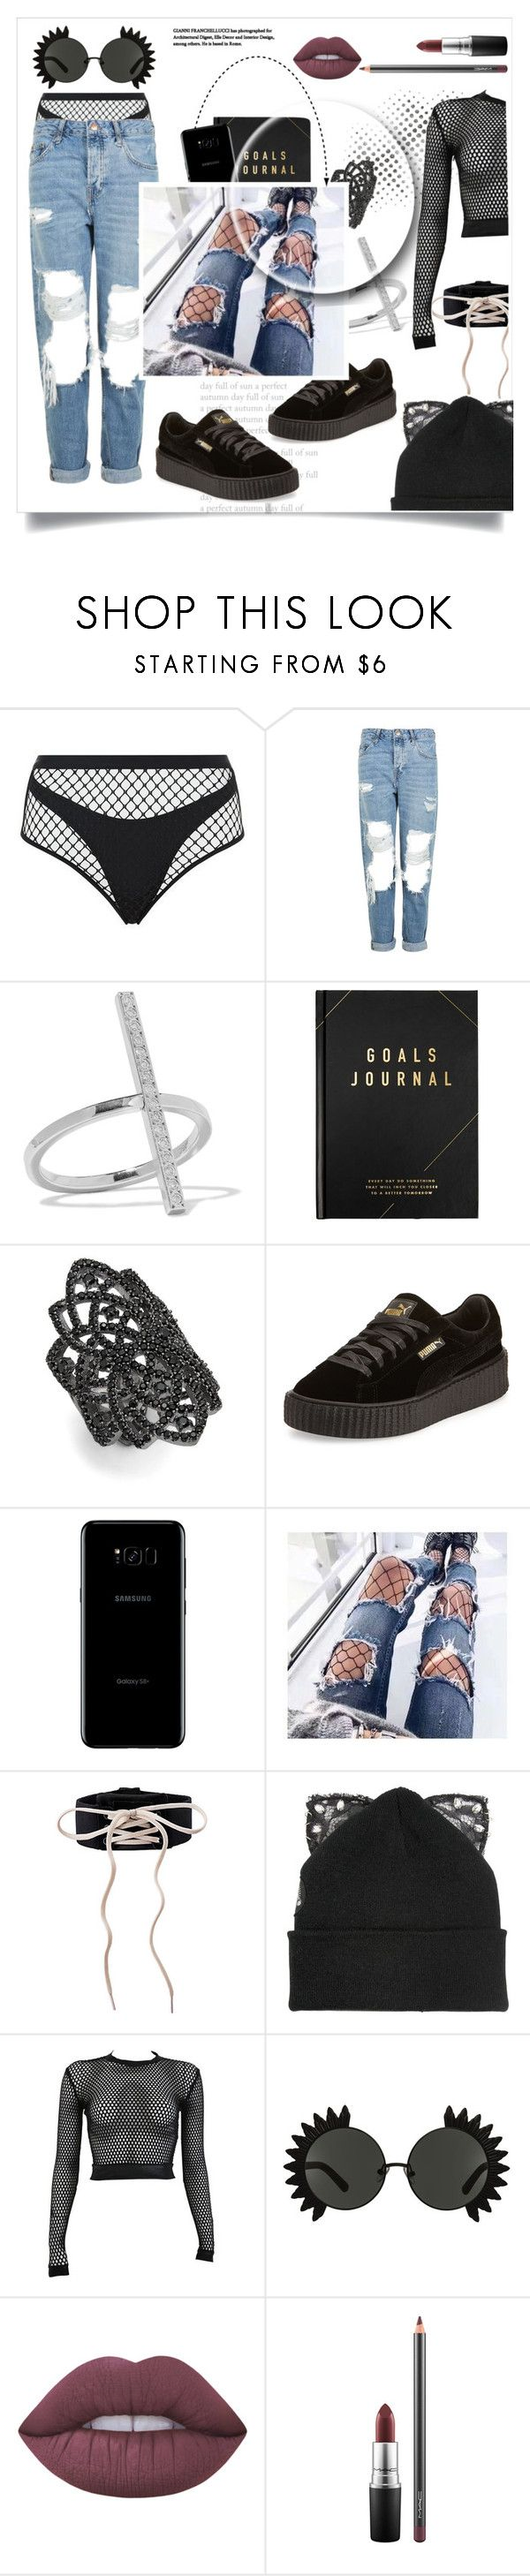 """""""Bad"""" by pretty0329 ❤ liked on Polyvore featuring Agent Provocateur, Topshop, Ileana Makri, kikki.K, nOir, Puma, Samsung, Silver Spoon Attire, PAM and Lime Crime"""